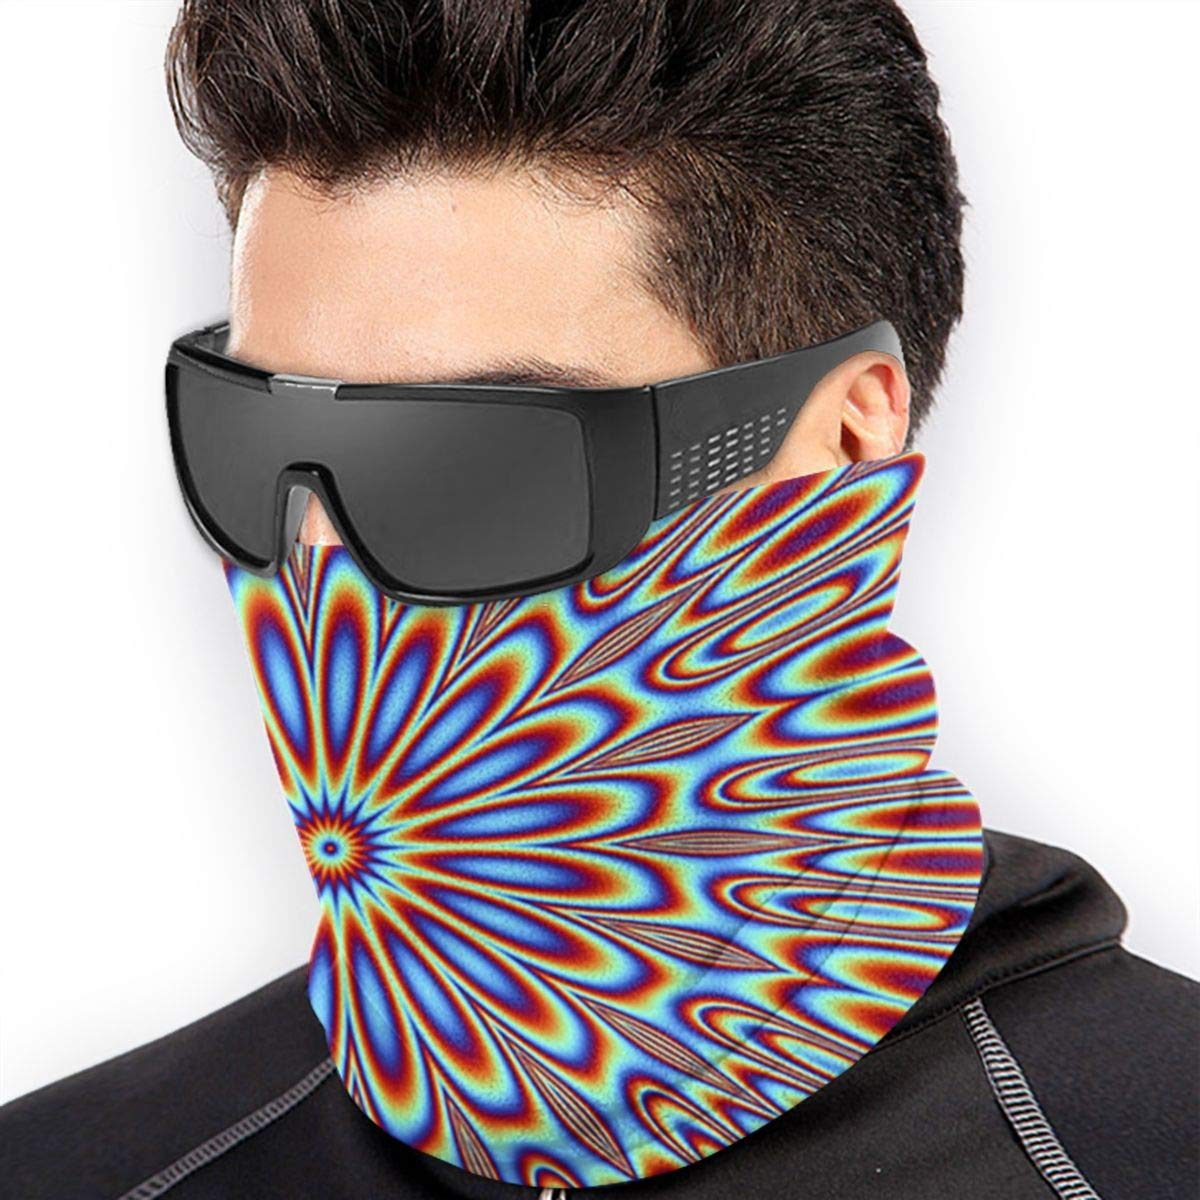 Alanader Tube Mask Stirnband Unisex Optical Illusion Spin Cycle Winter Fleece Neck Warmer Gaiters Hairband Cold Weather Tube Face Mask Thermal Neck Scarf Outdoor UV Protection Party Cover Black